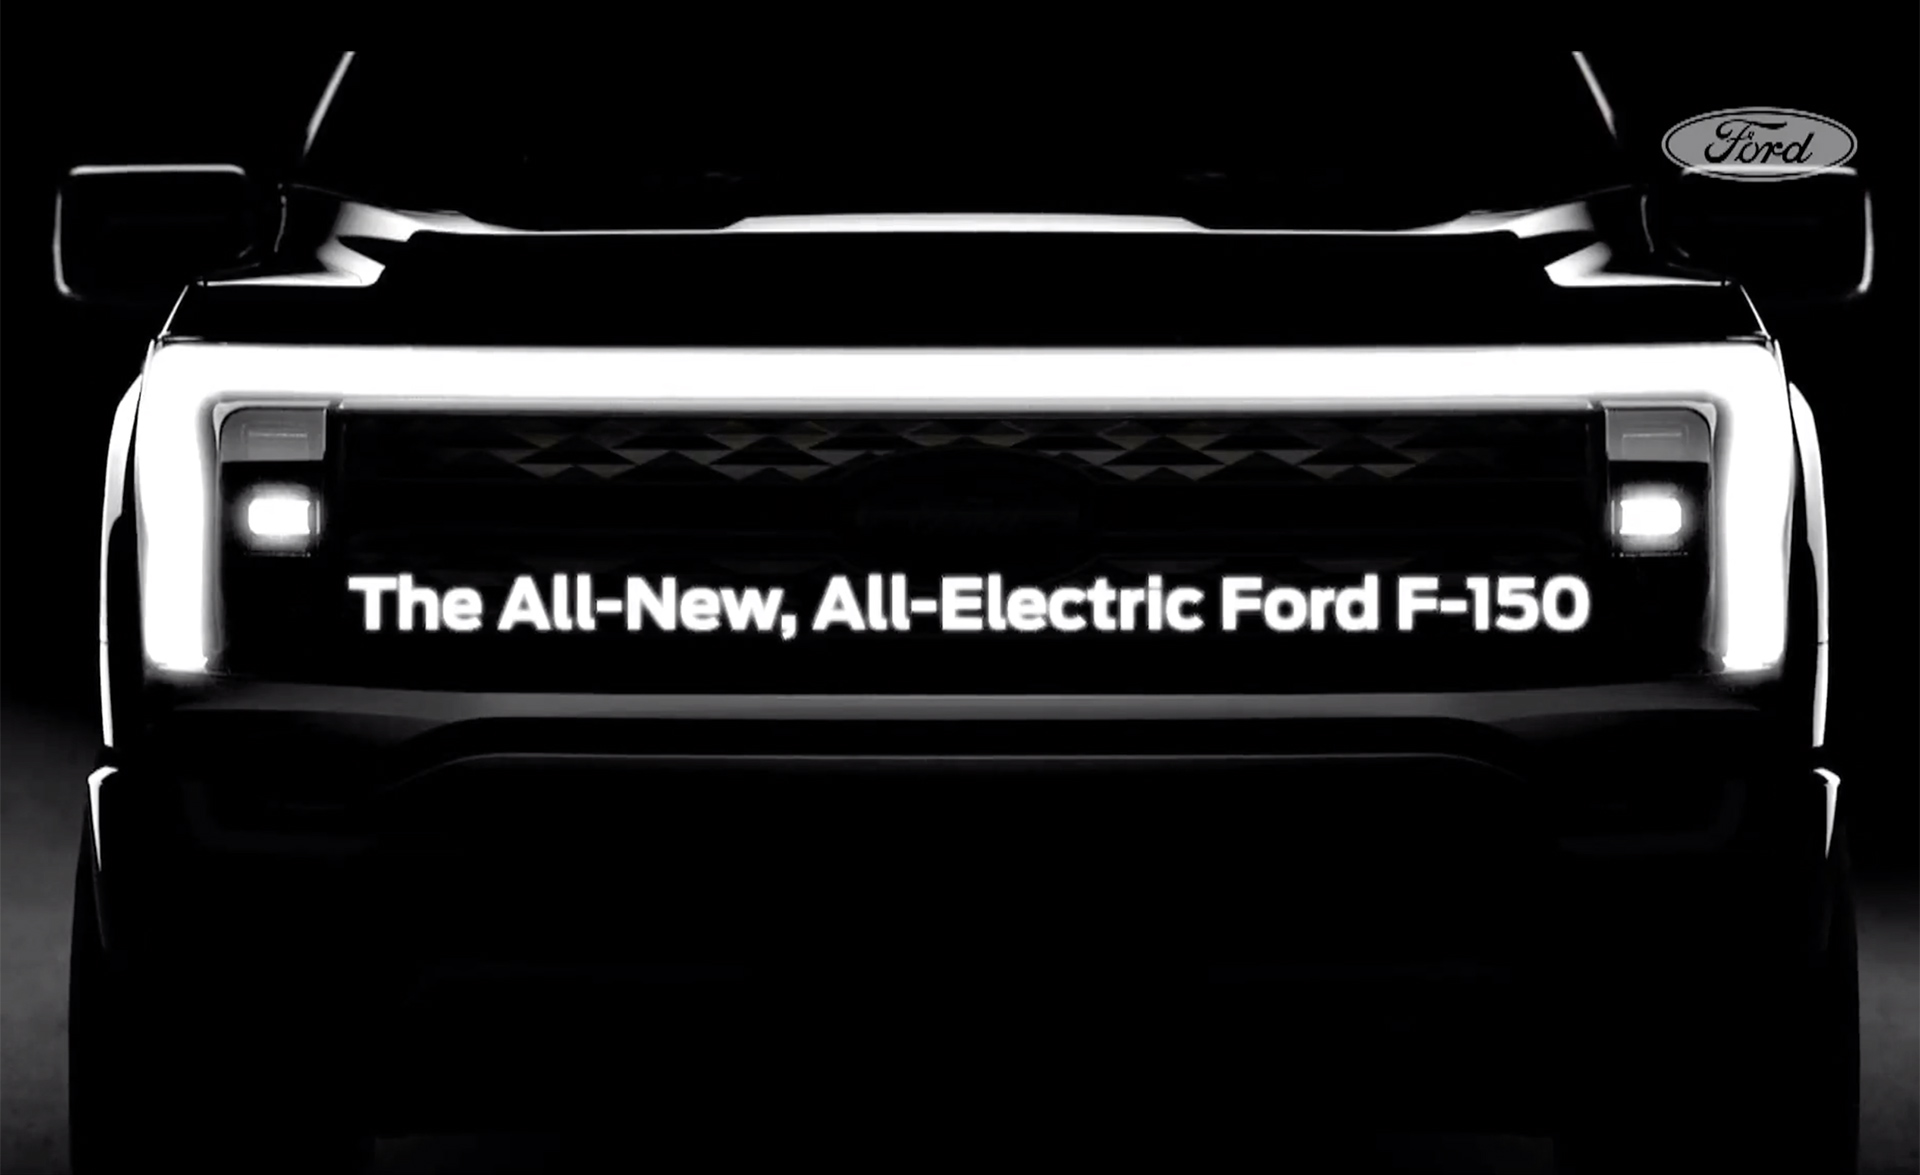 2022 Ford F-150 Electric teaser image